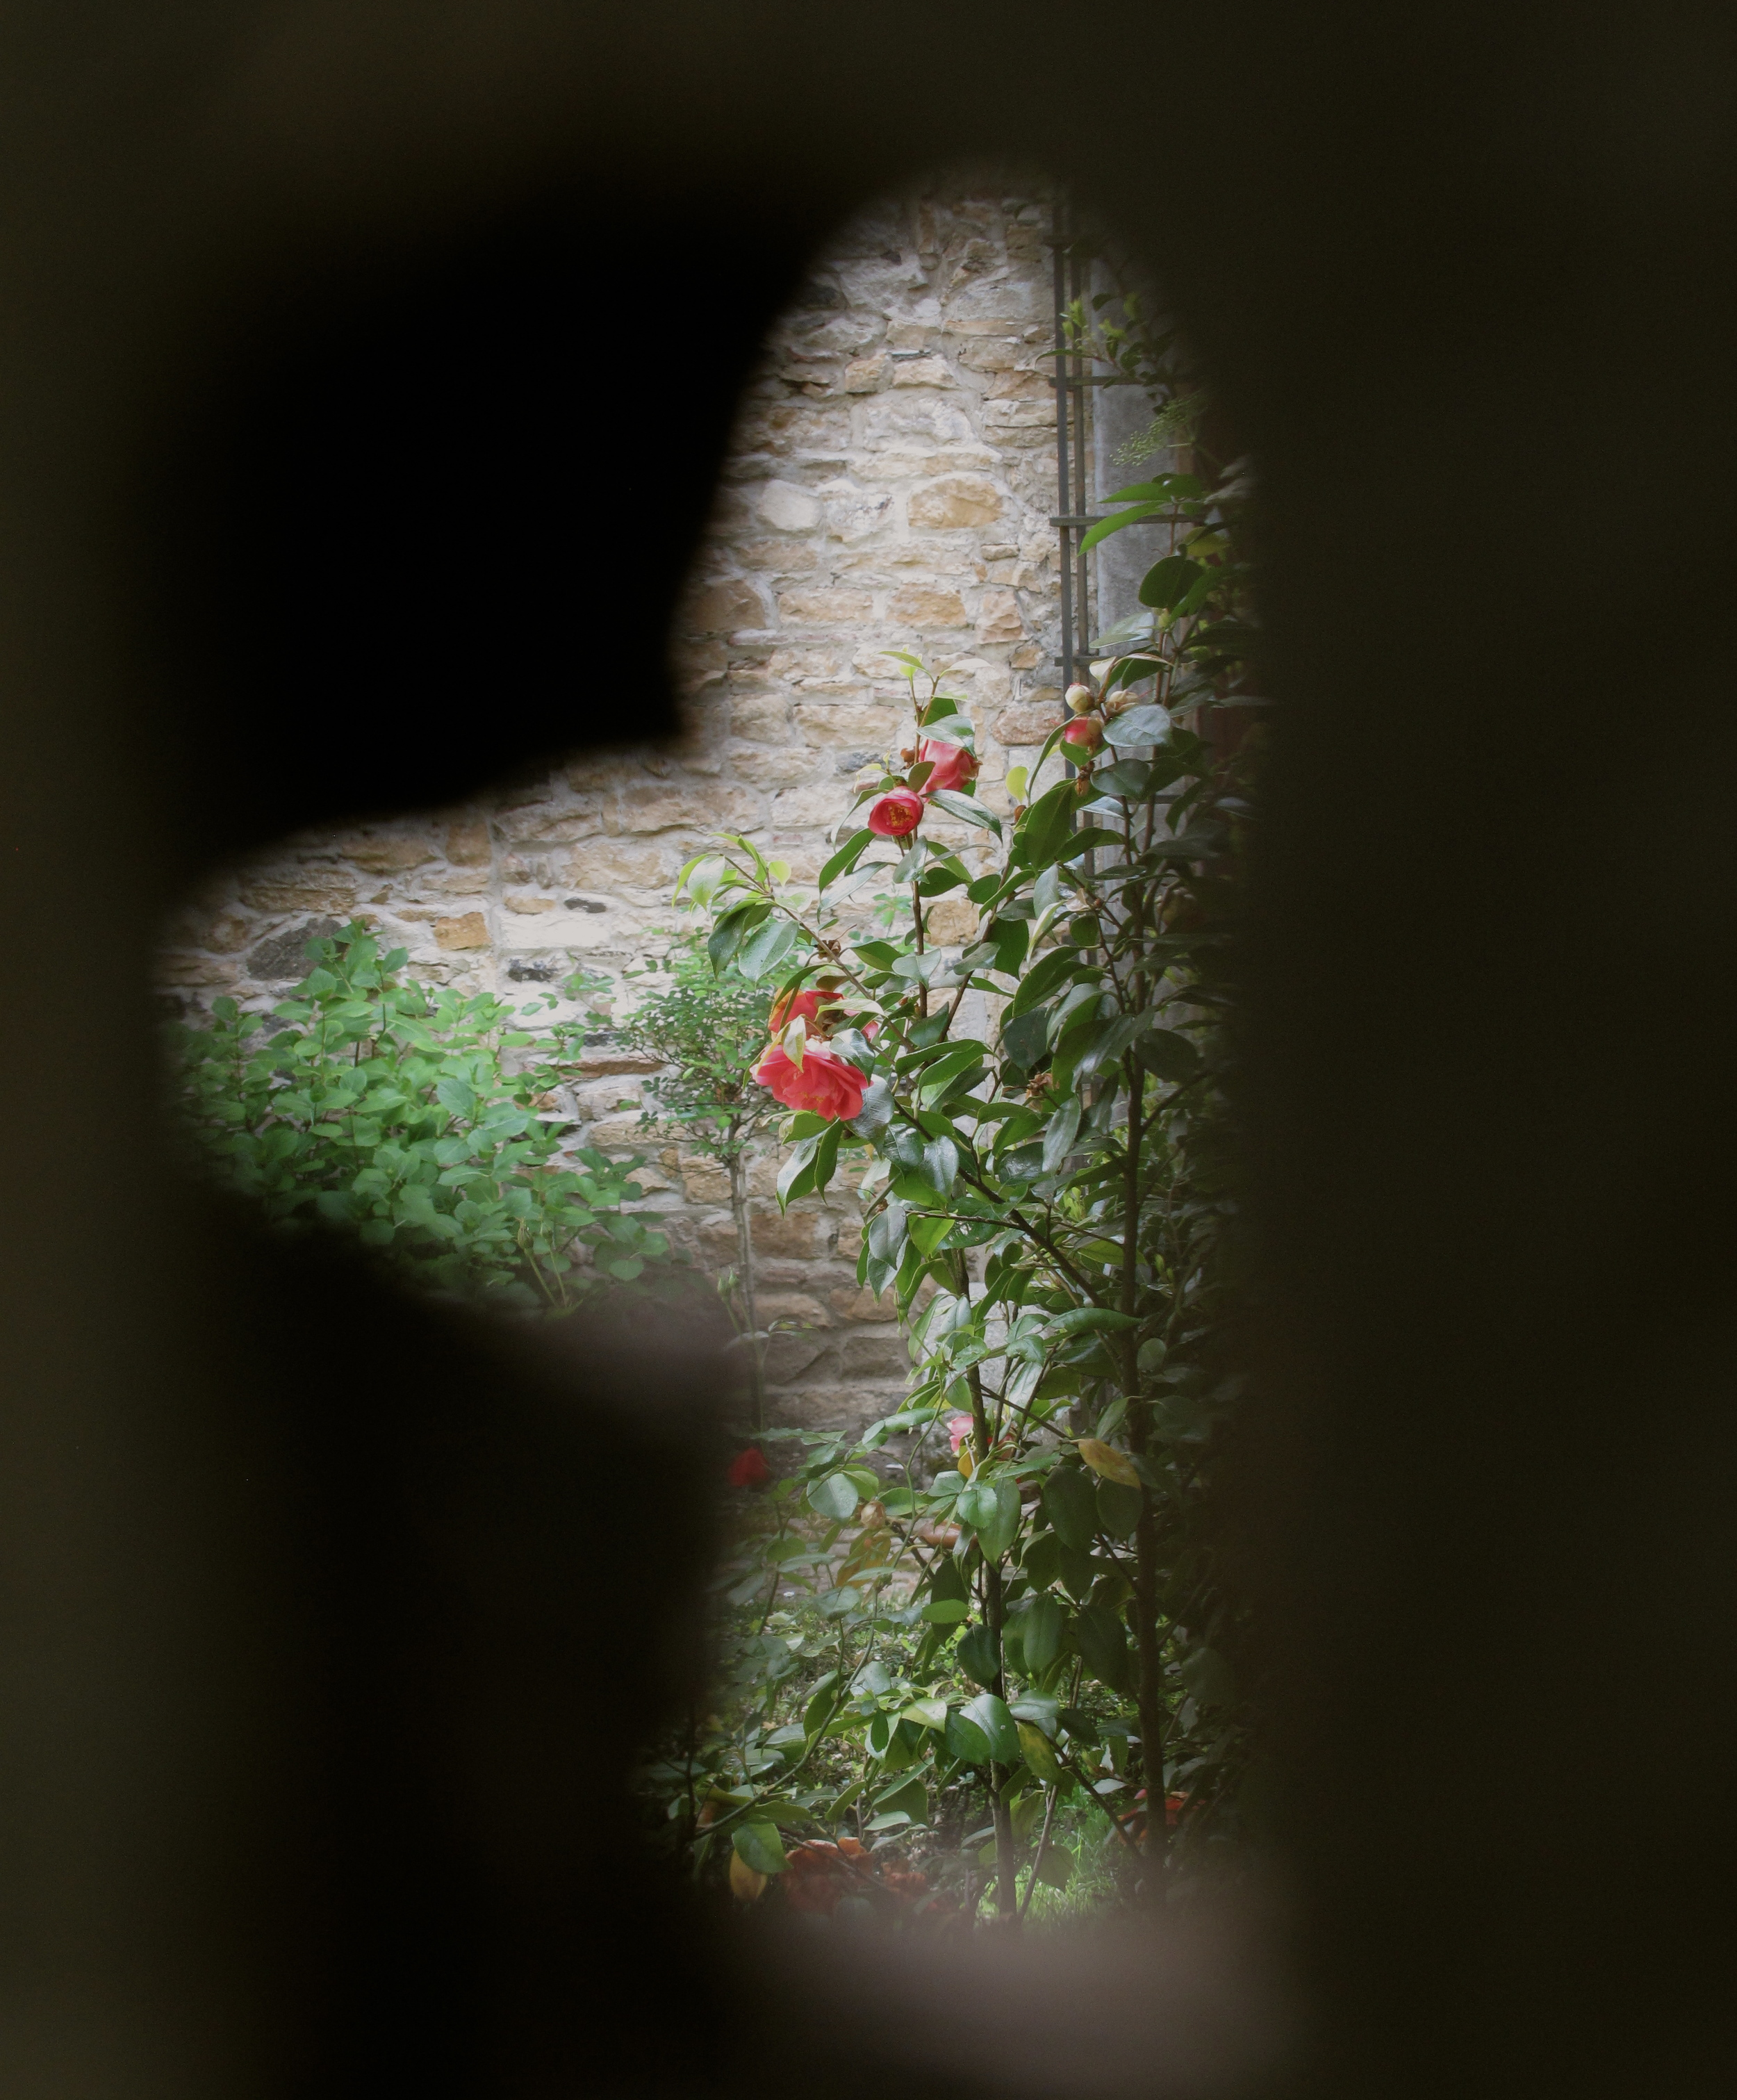 Spying through a keyhole into a garden of roses on a hidden island in France